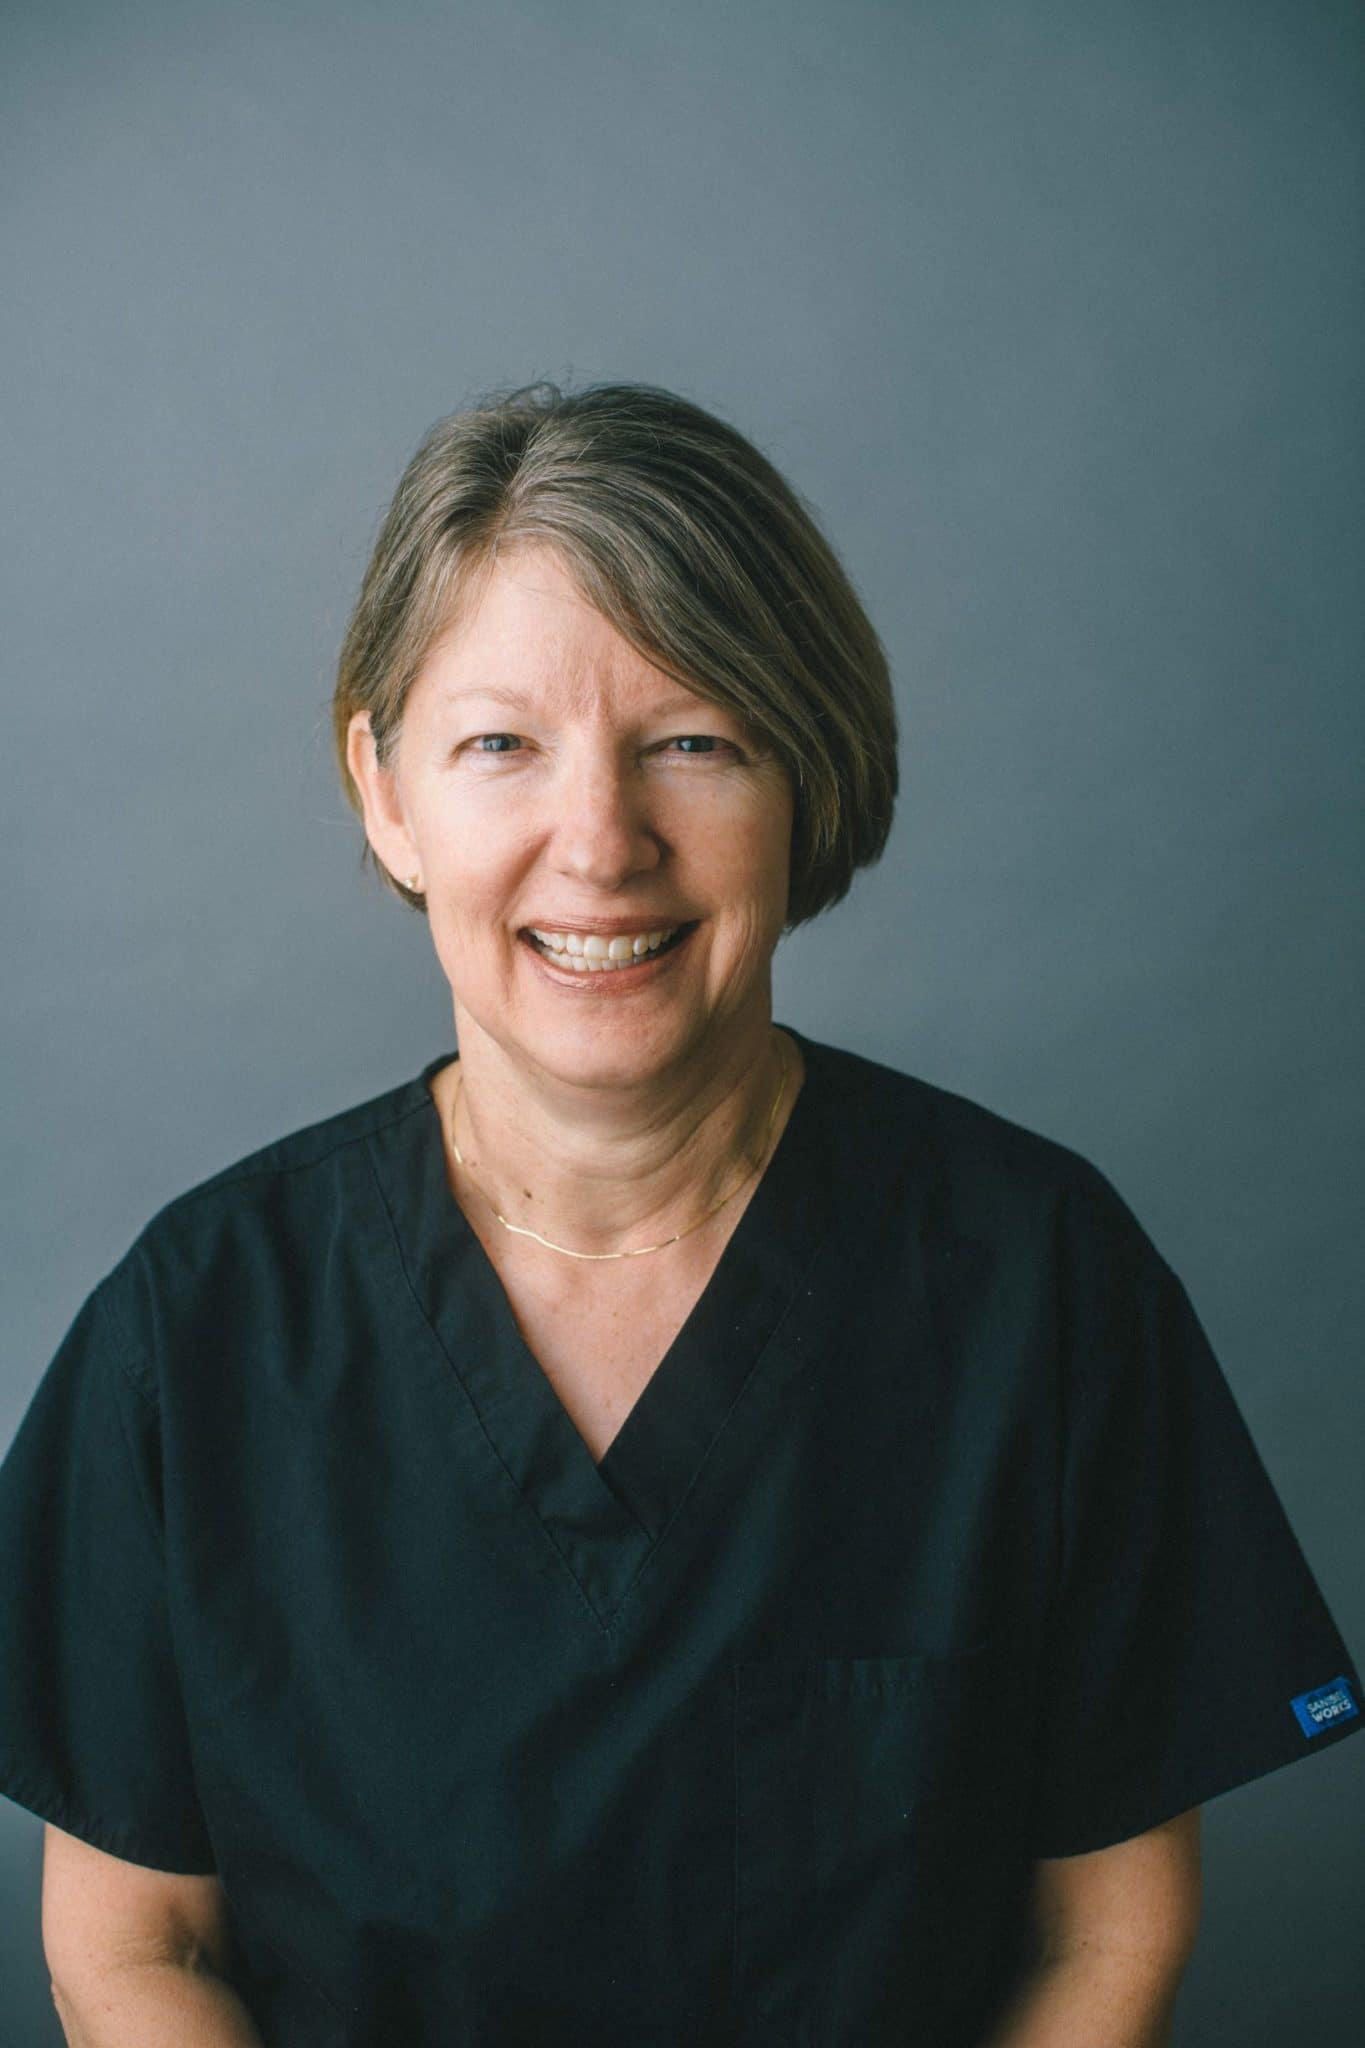 photo of hygienist